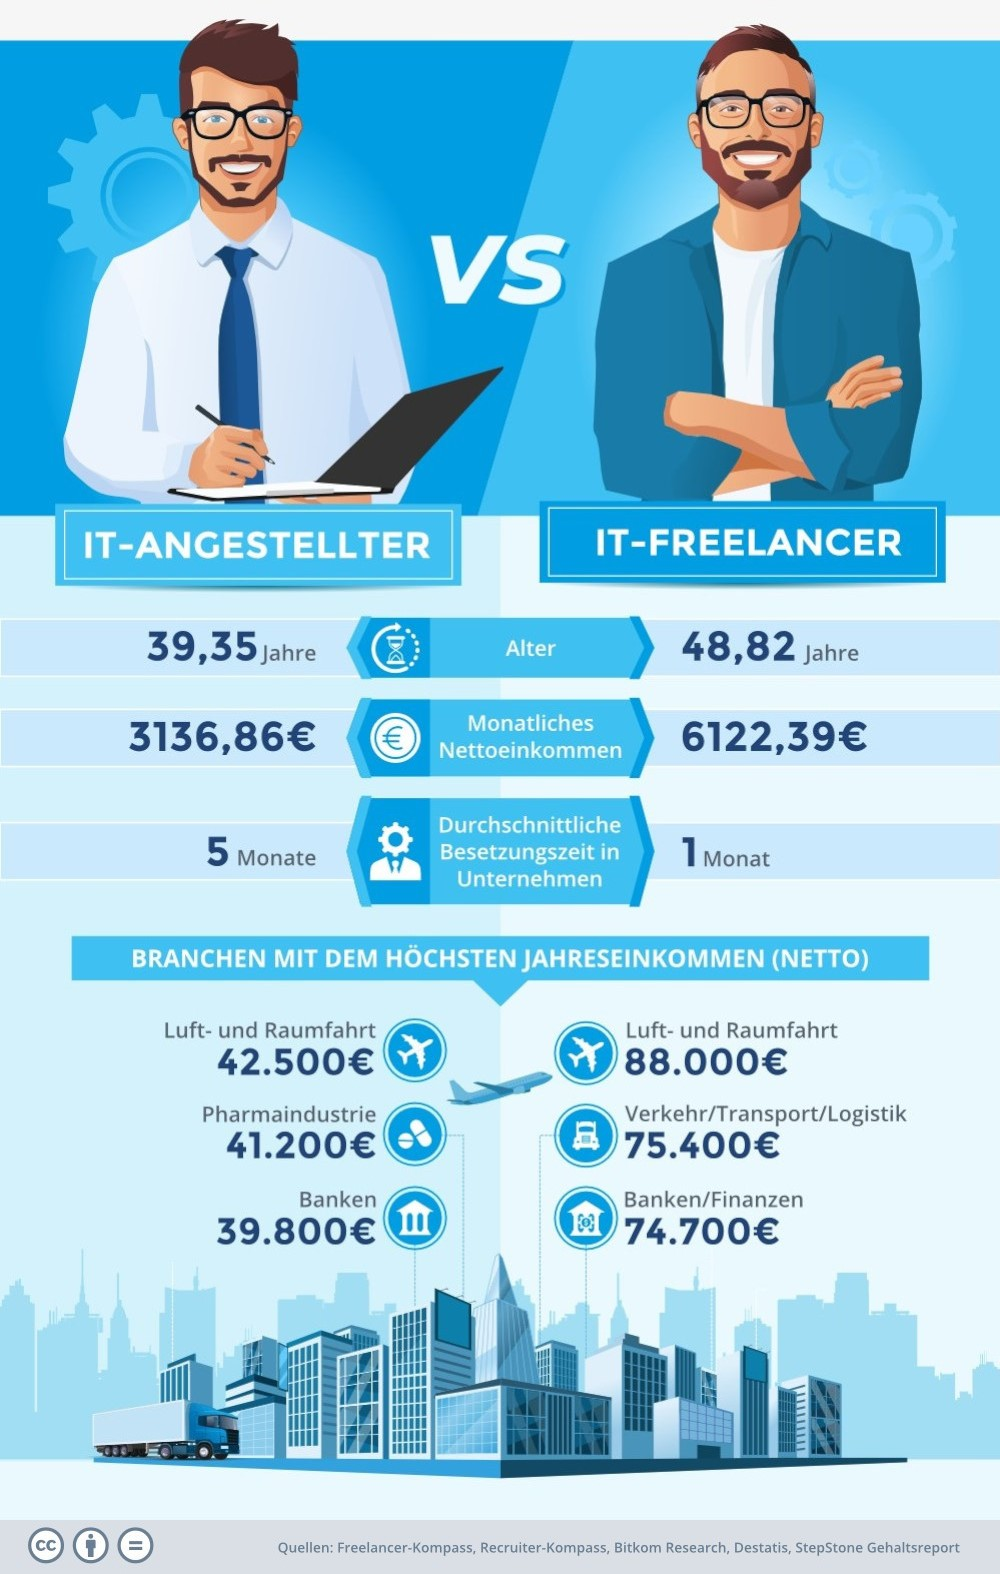 IT-Angestellter vs. IT-Freelancer